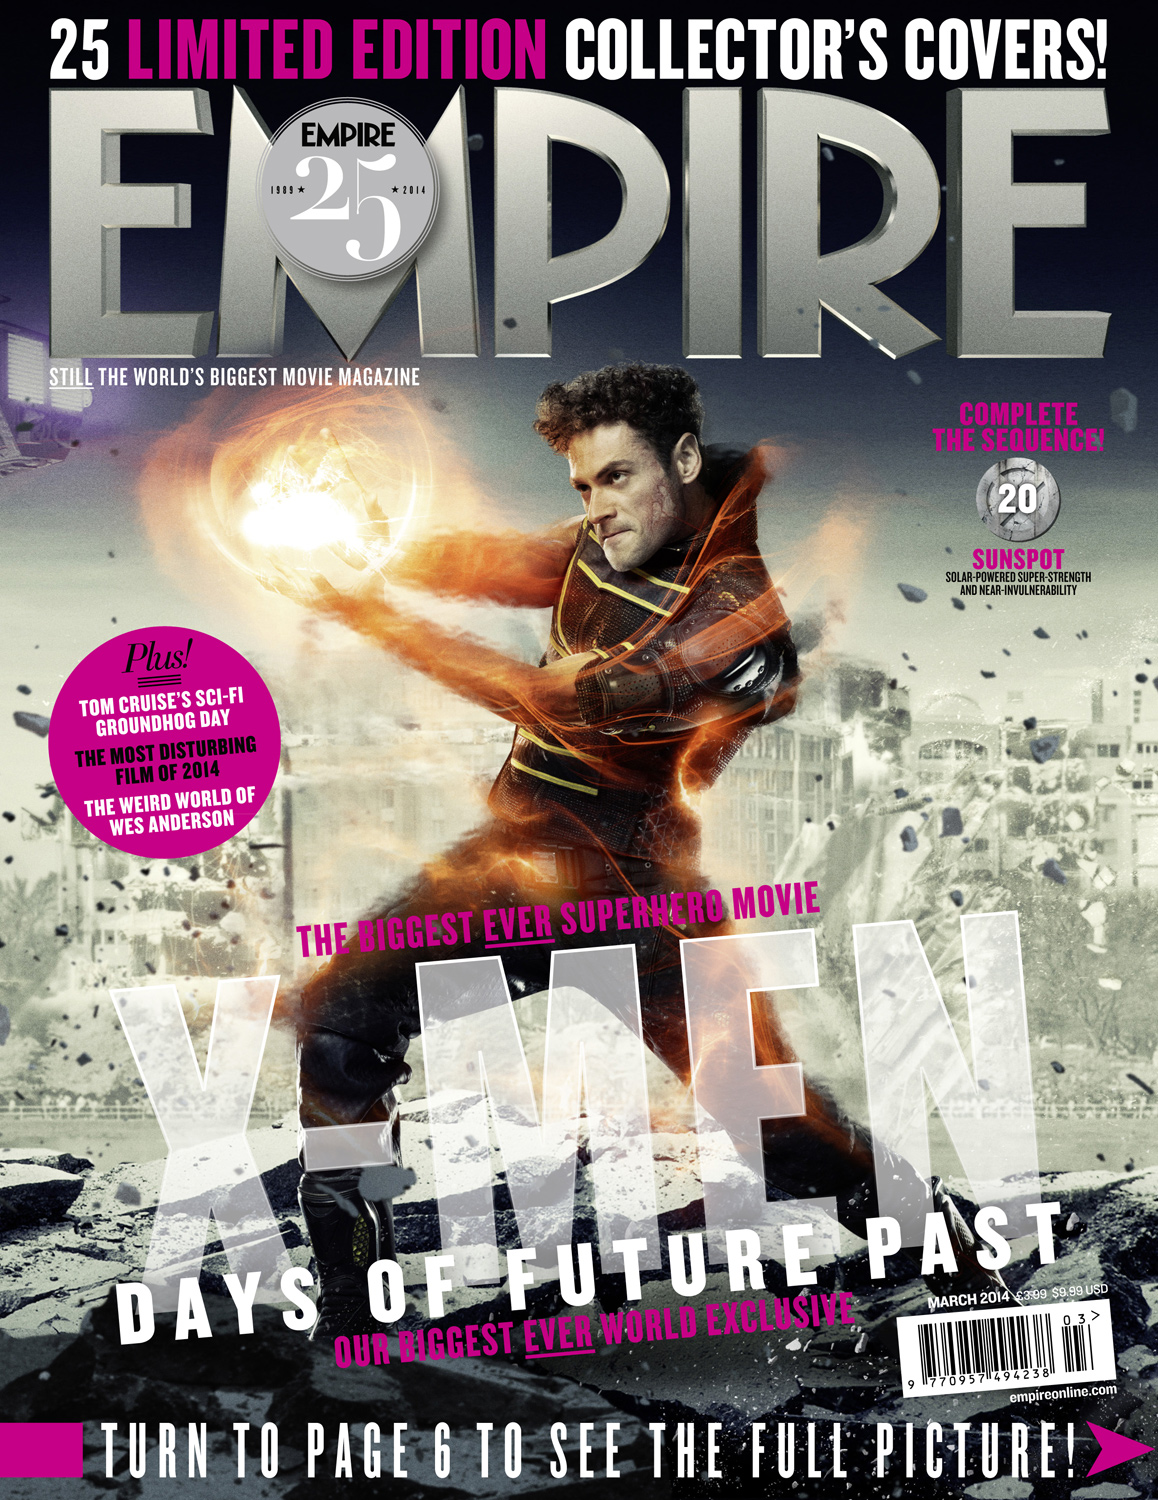 X-MEN DAYS OF FUTURE PAST-Official Poster Banner PROMO EMPIRE COVER-28JANEIRO2014-05